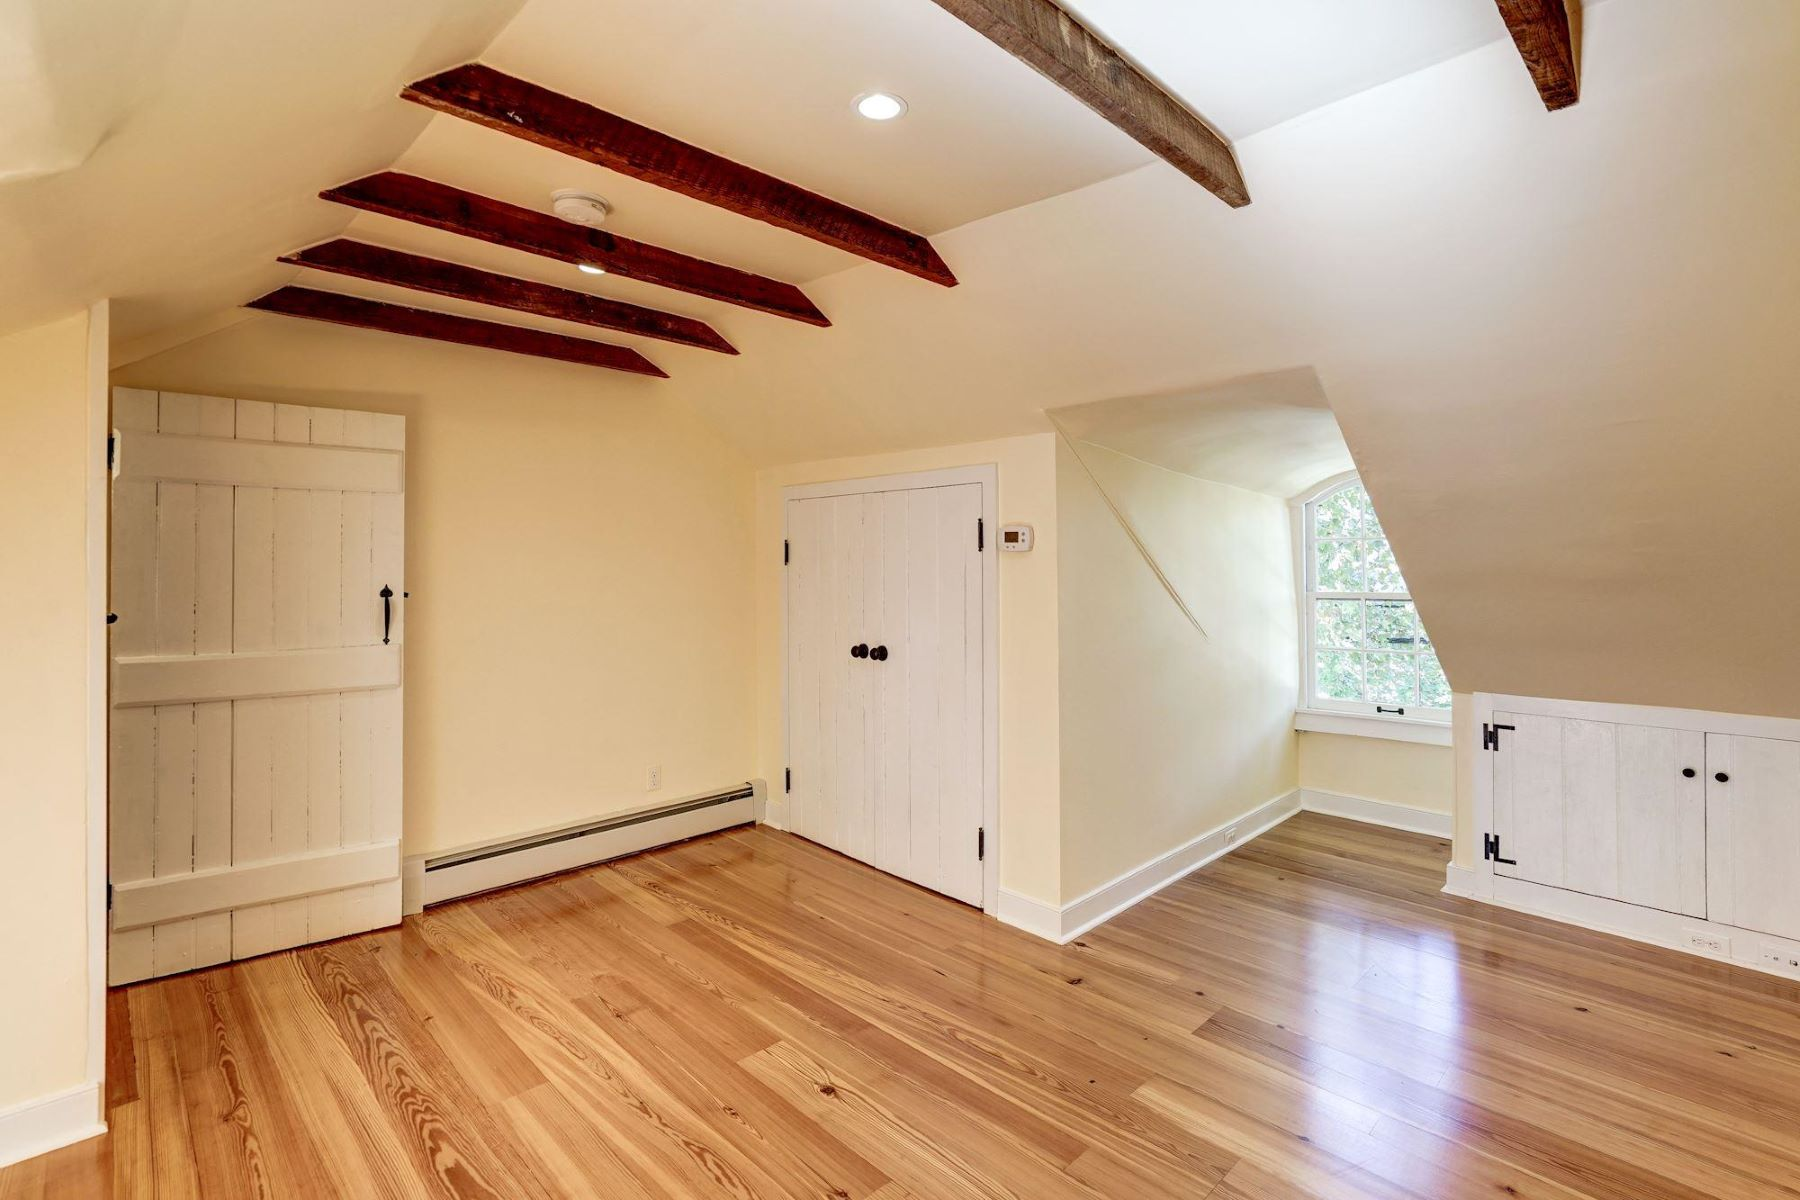 Additional photo for property listing at 1110 Prince St 1110 Prince St Alexandria, Virginia 22314 United States